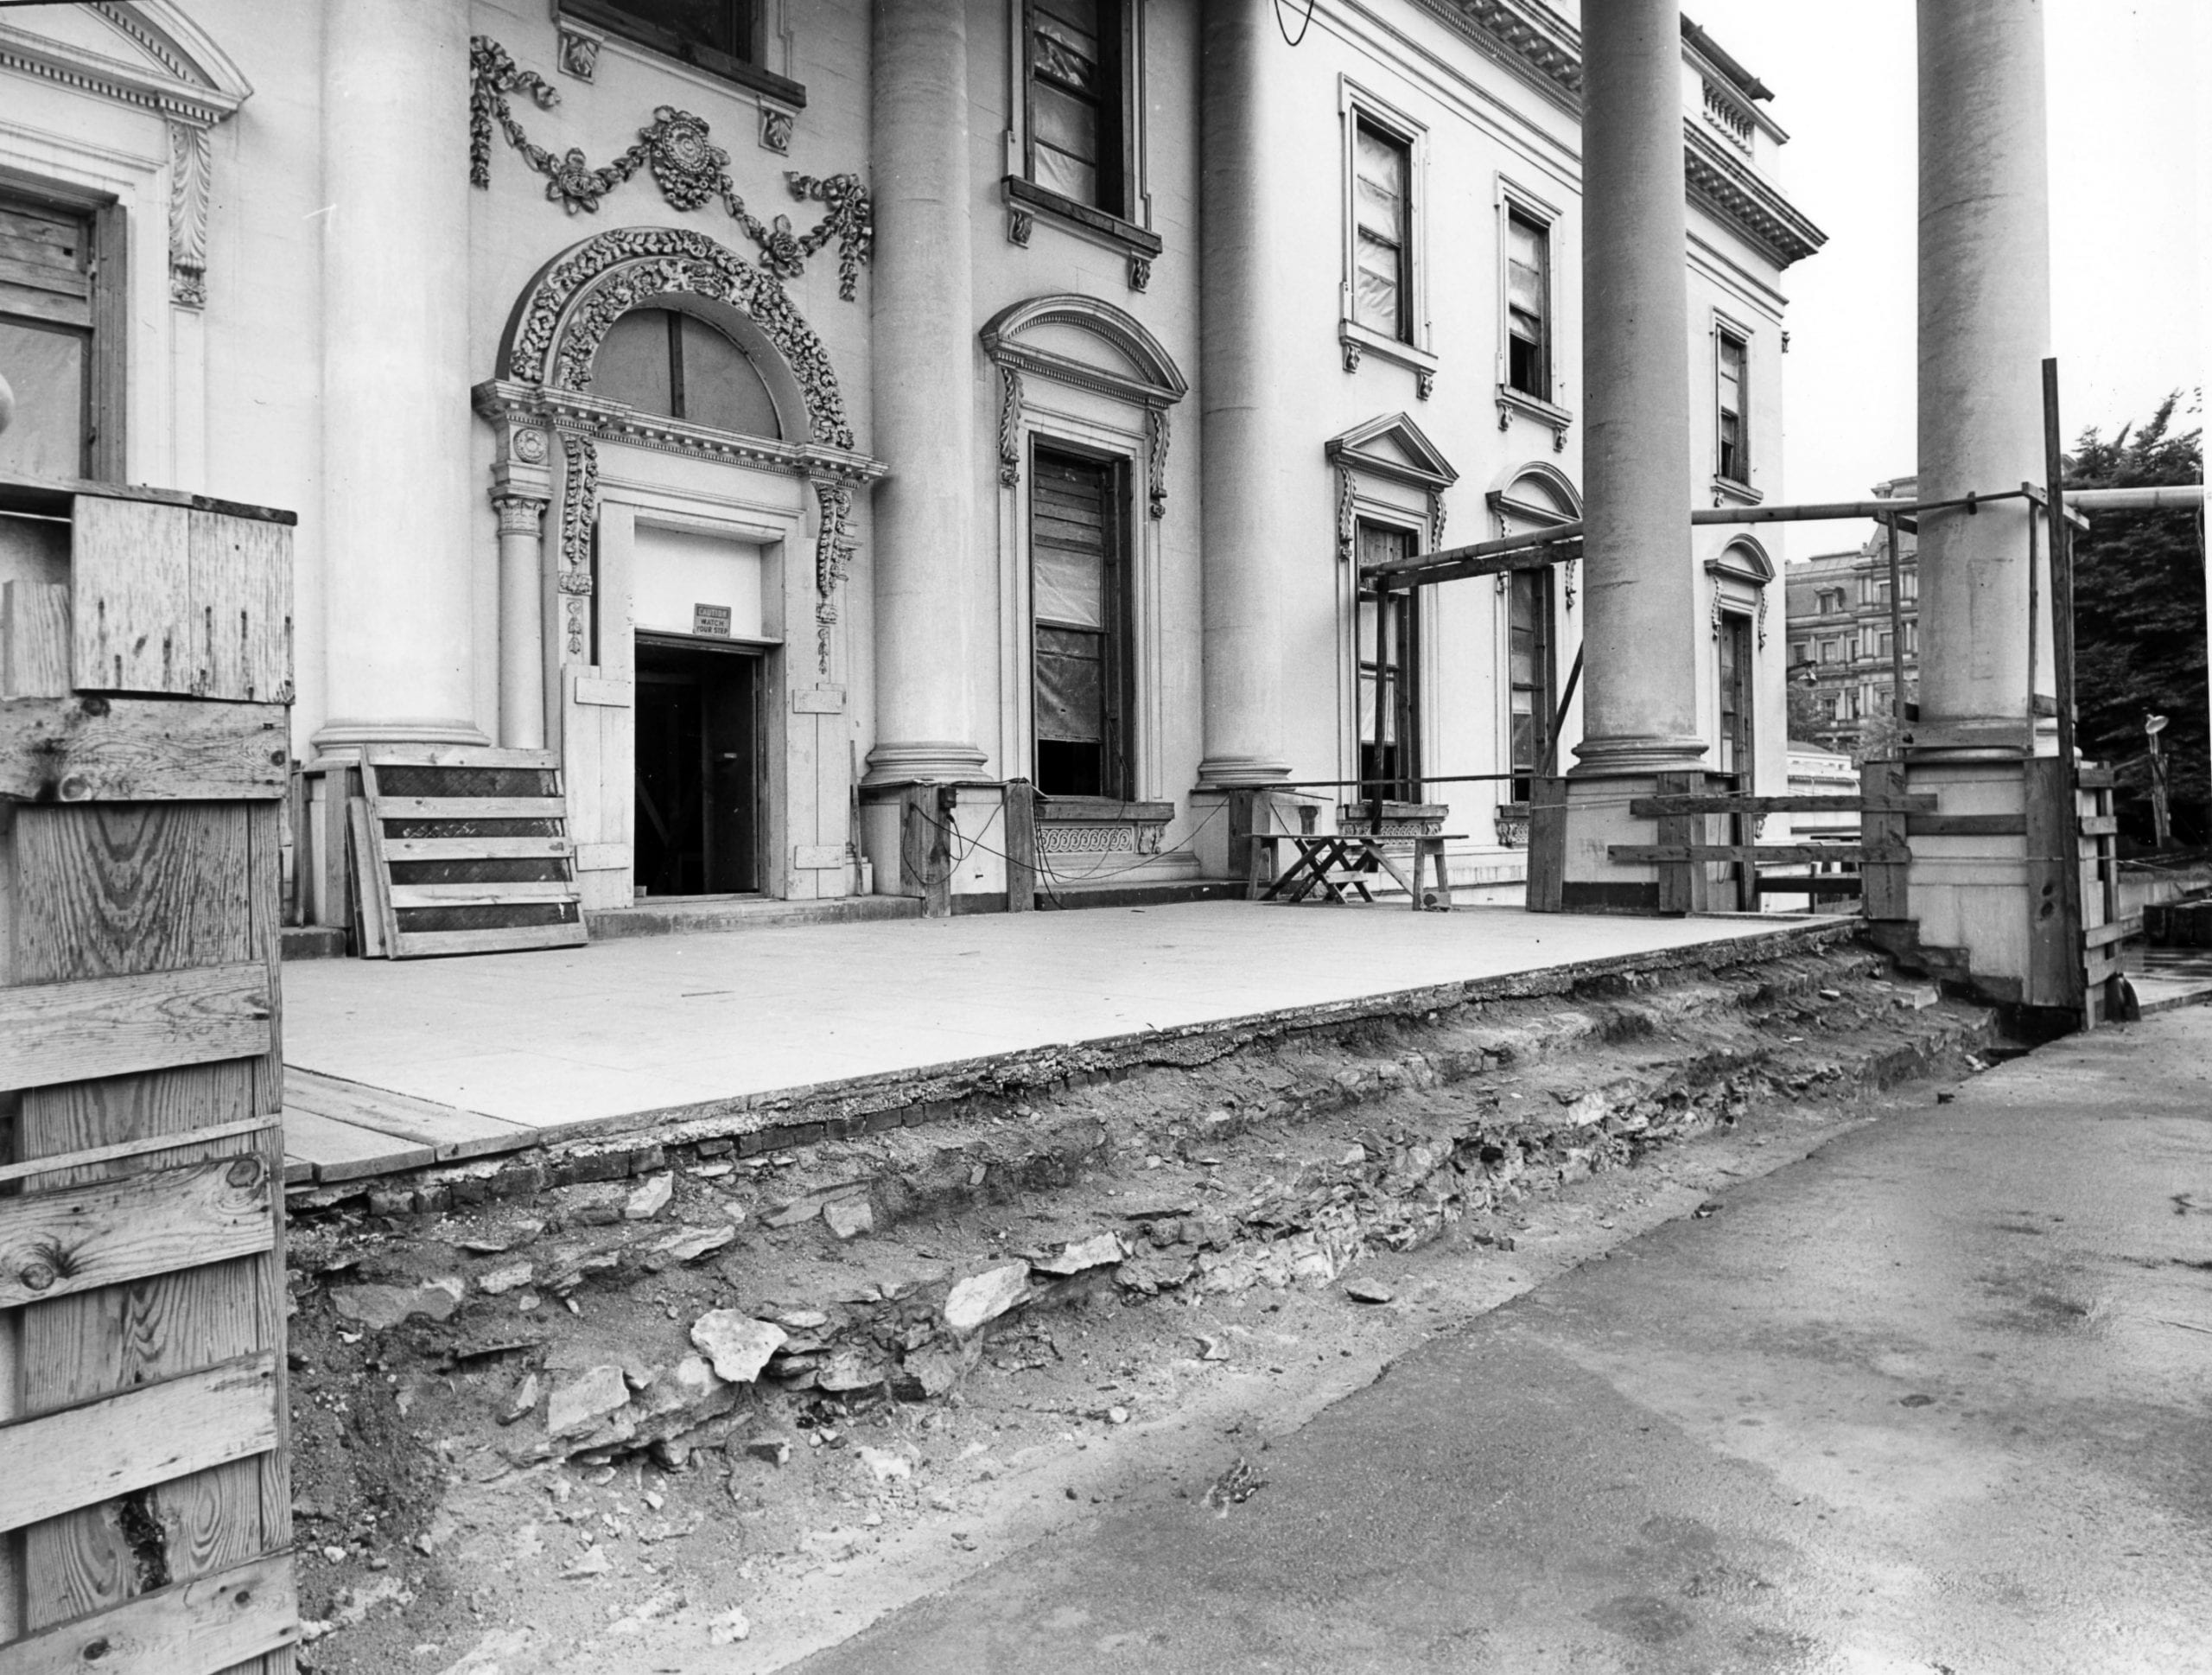 Southwest View of the North Portico of the White House during the Renovation - June 5th, 1951